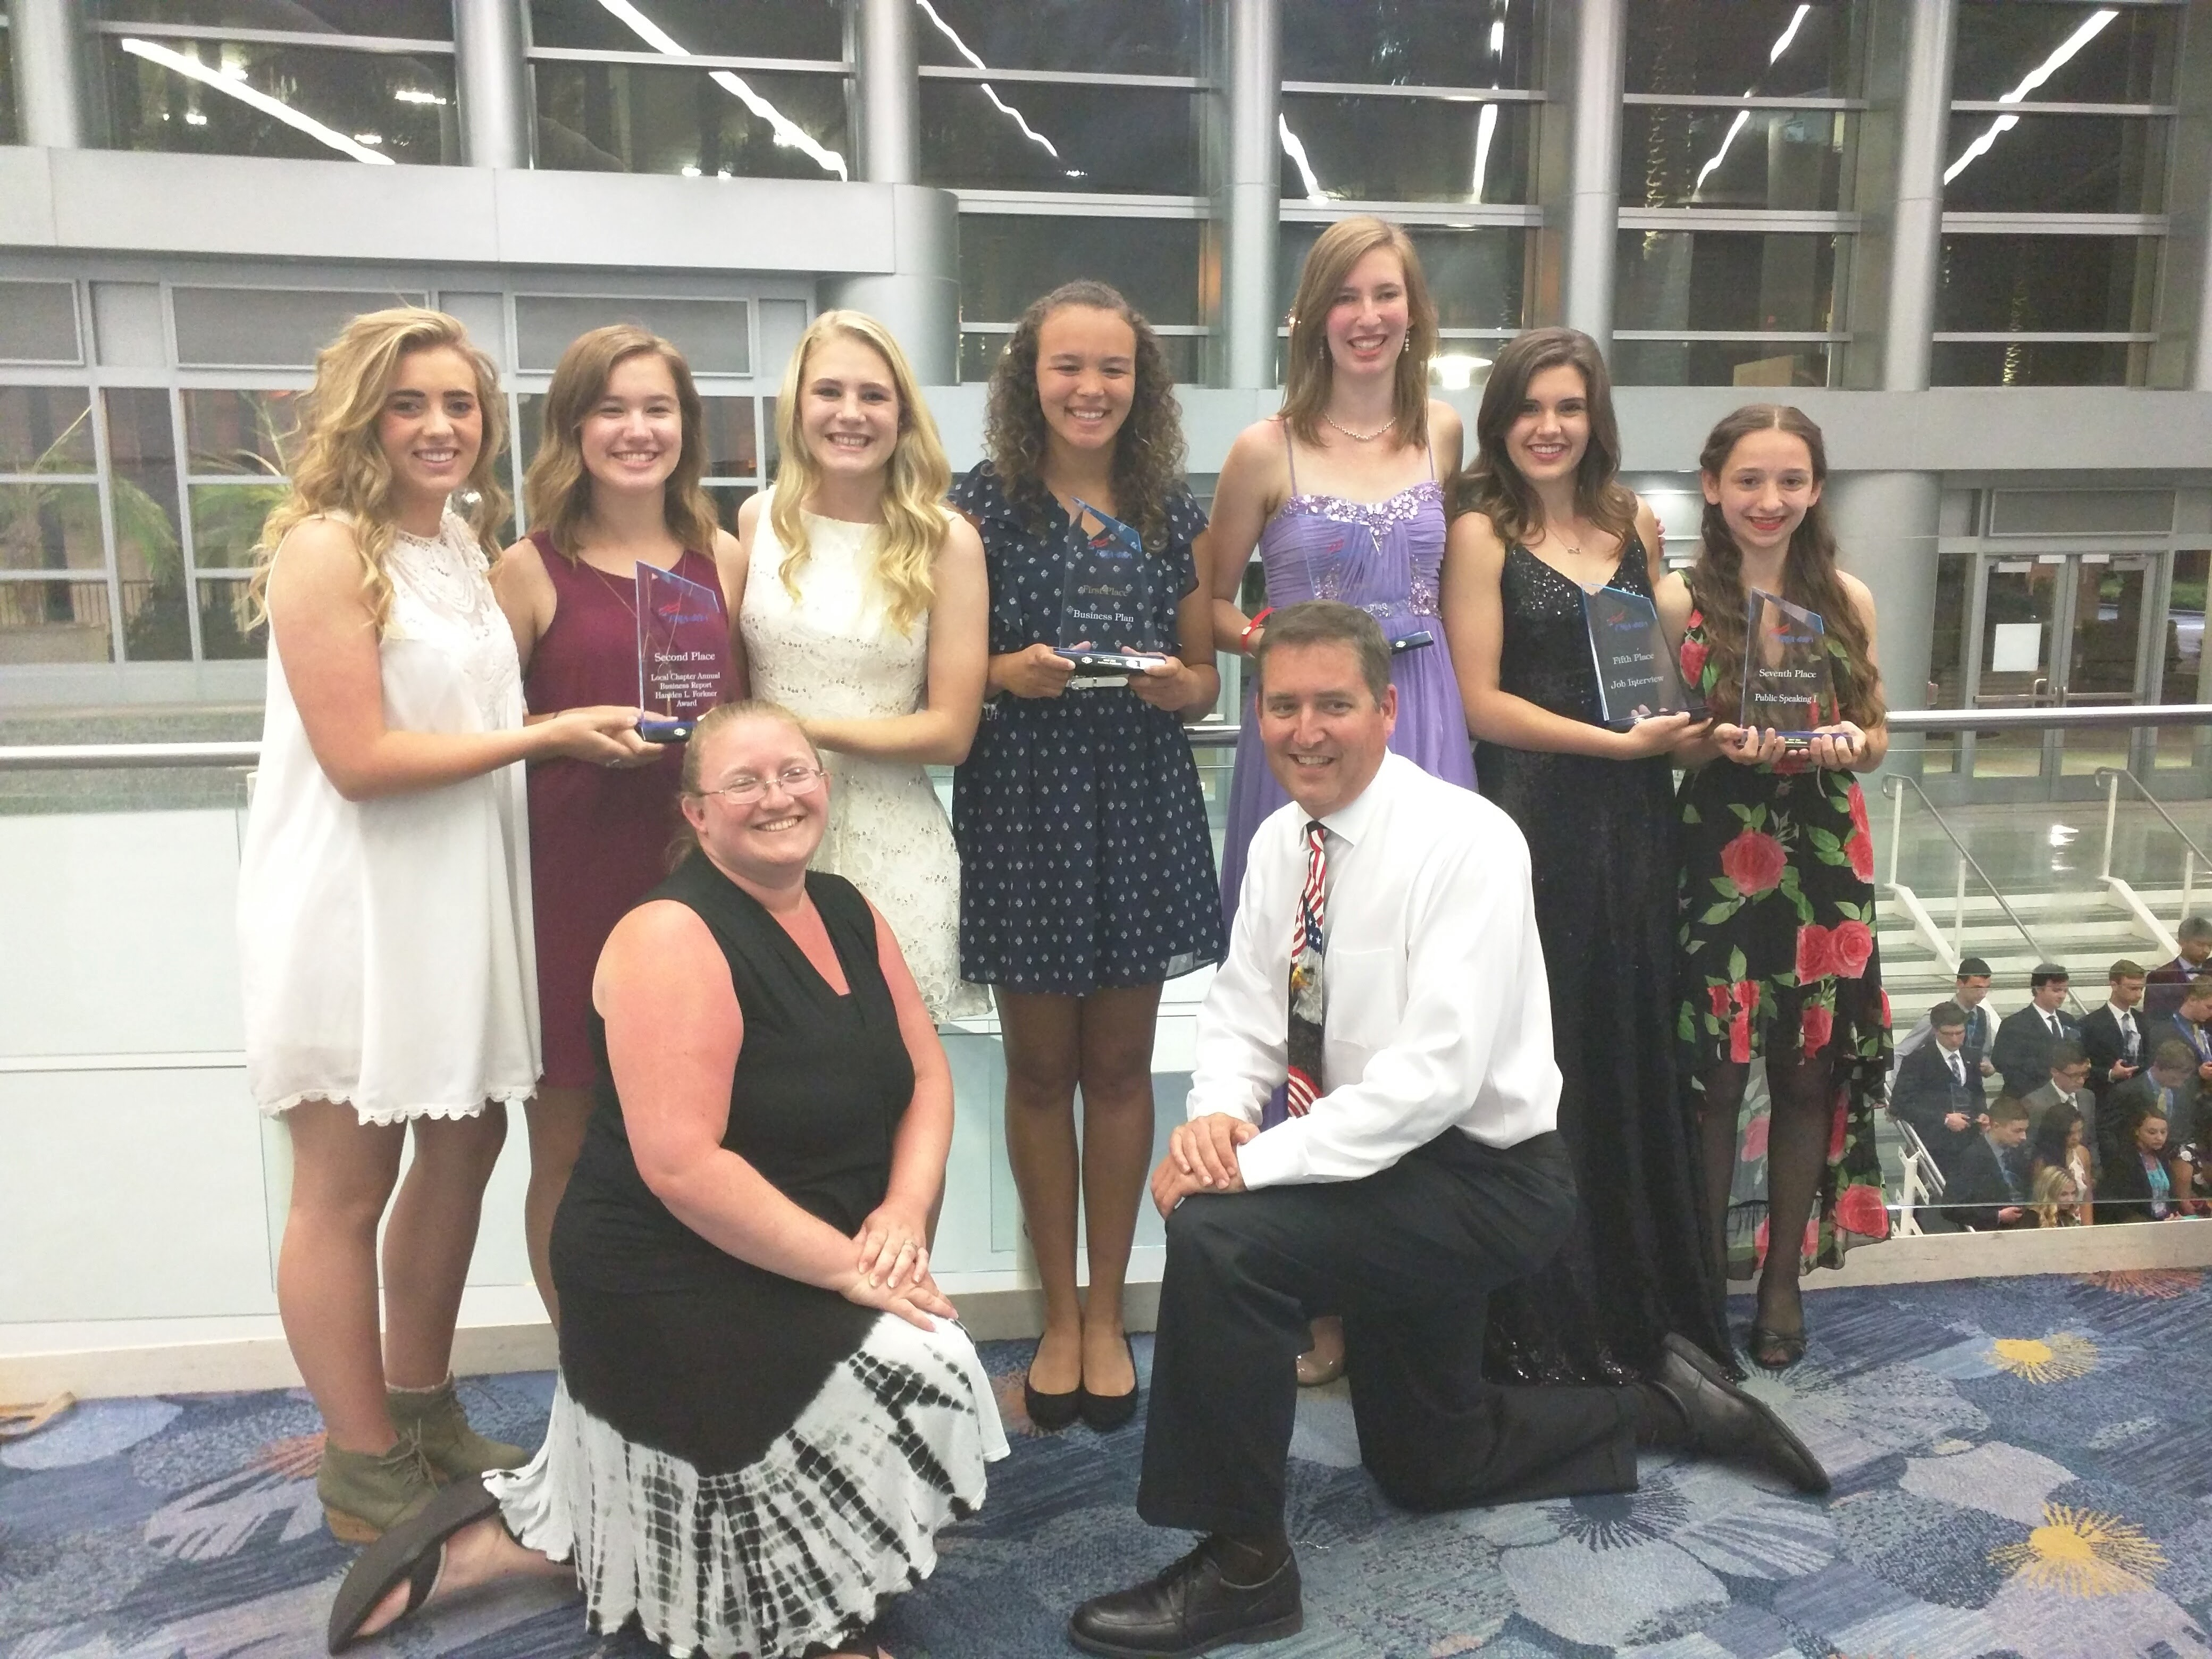 The Hidden Valley High School Future Business Leaders of America chapter placed in four events at the National Leadership Conference in Anaheim, California, with (from left) Sayge Pereria, Averie Richter, Madison O'Brien, Jeydawn Coates, Sylvia Marr, Kali Henderson and Jasmine Williams taking home honors. Advisers Ashlee Griffith and Chris Pendleton (kneeling front) traveled with the teens.